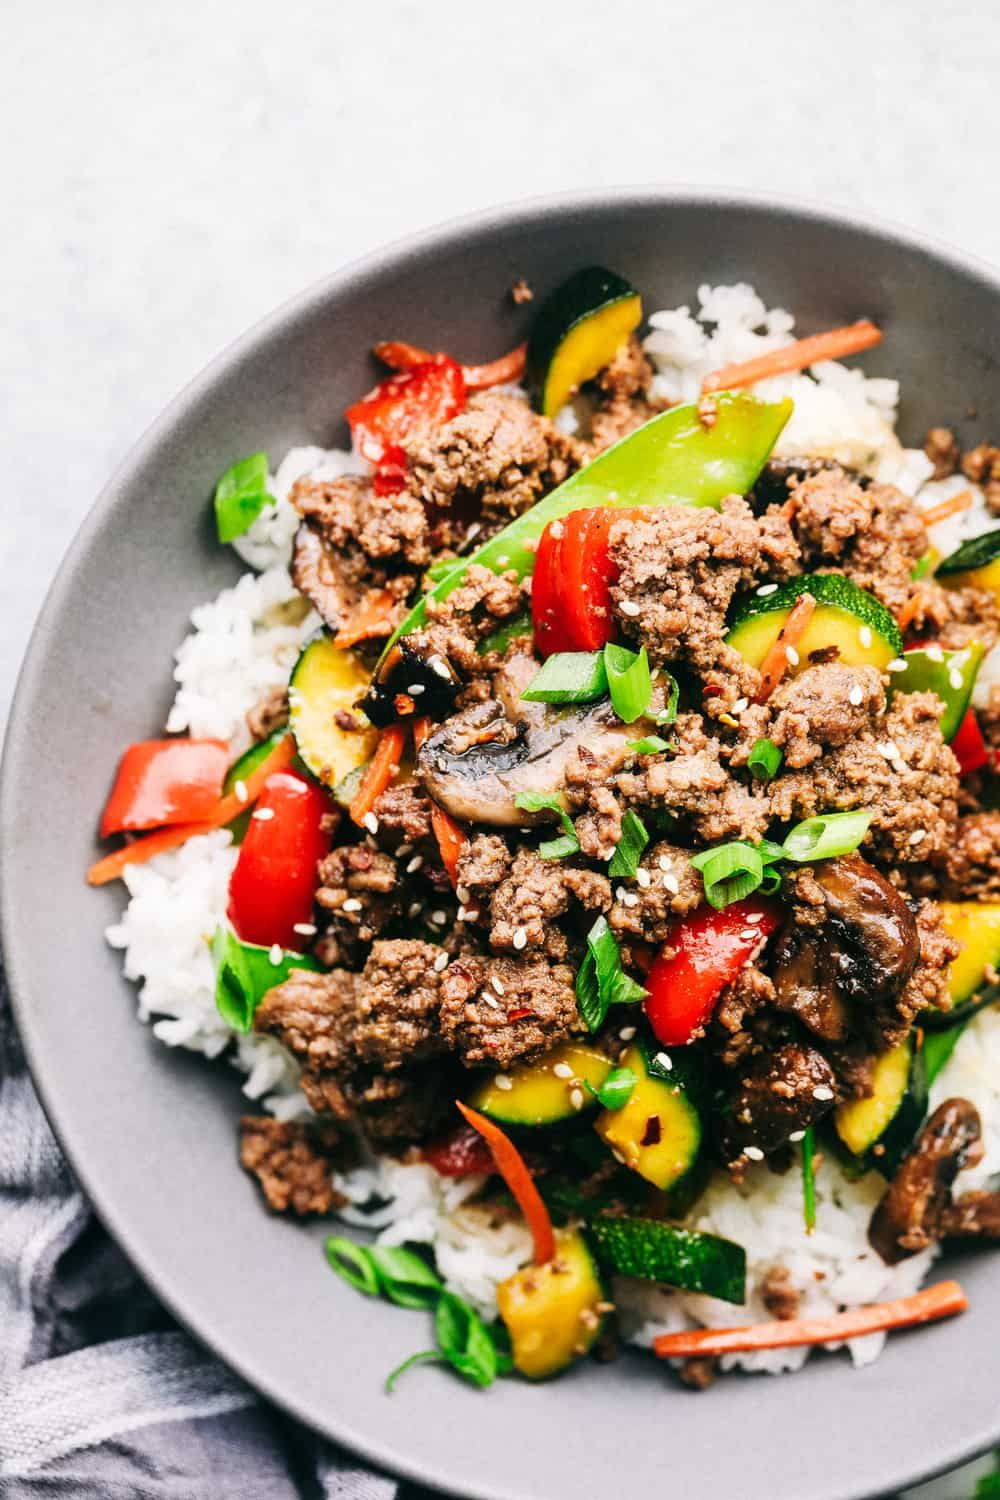 Korean Ground Beef Stir Fry Is Incredibly Easy To Make And Has The Best Flavor This Is A Recipe That M In 2020 Best Ground Beef Recipes Beef Dinner Korean Ground Beef